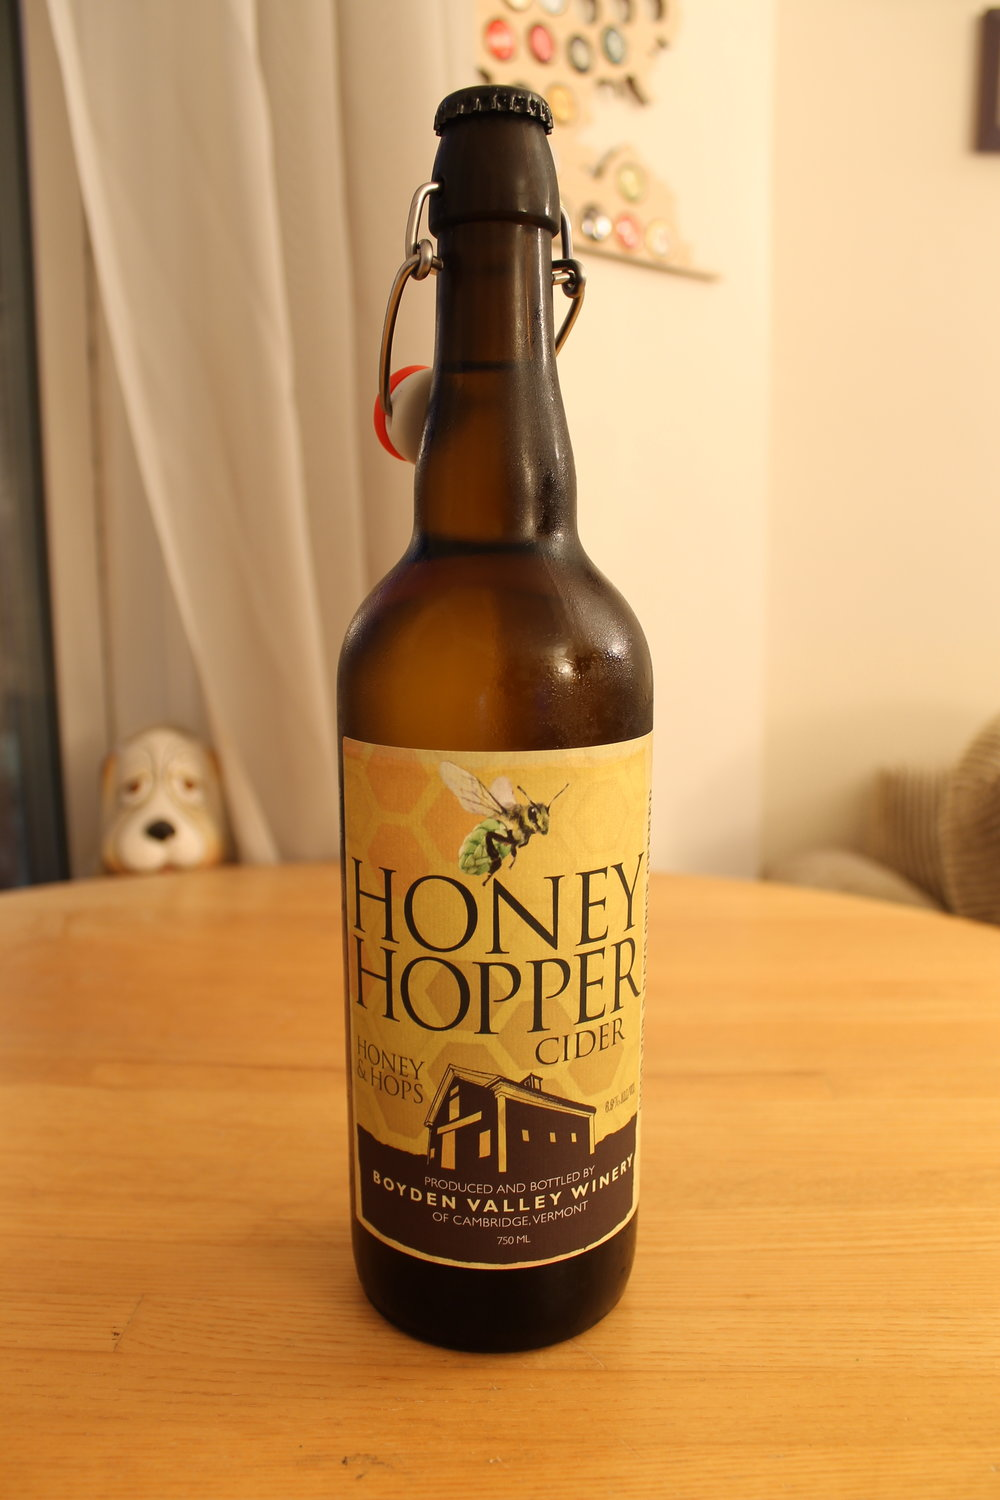 Boyden Valley Winery: Honey Hopper